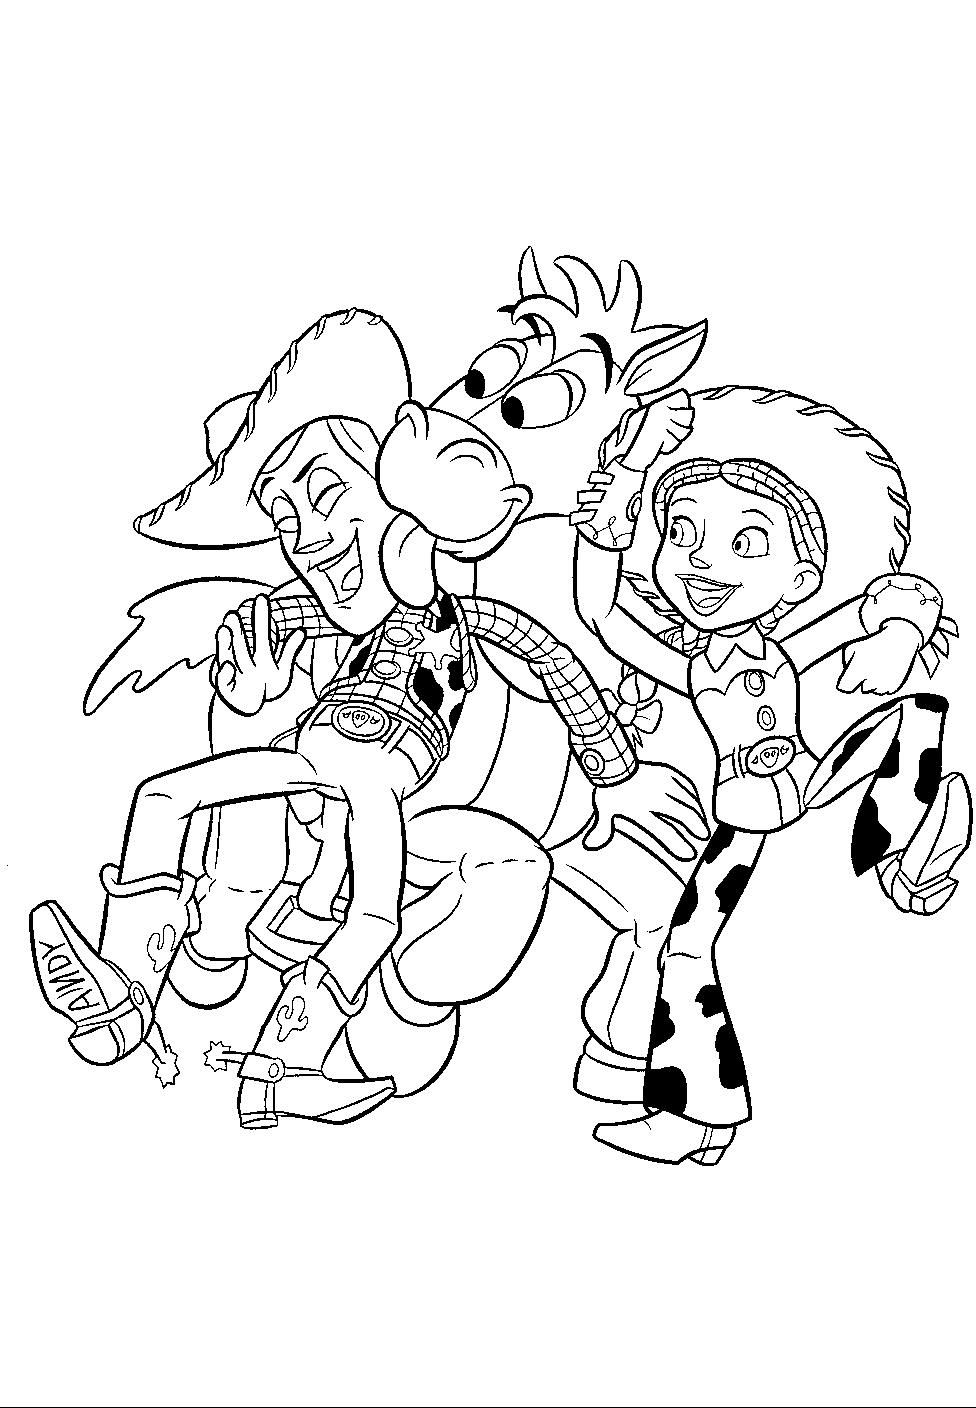 Toy Story coloring page Coloring Pages for Kids